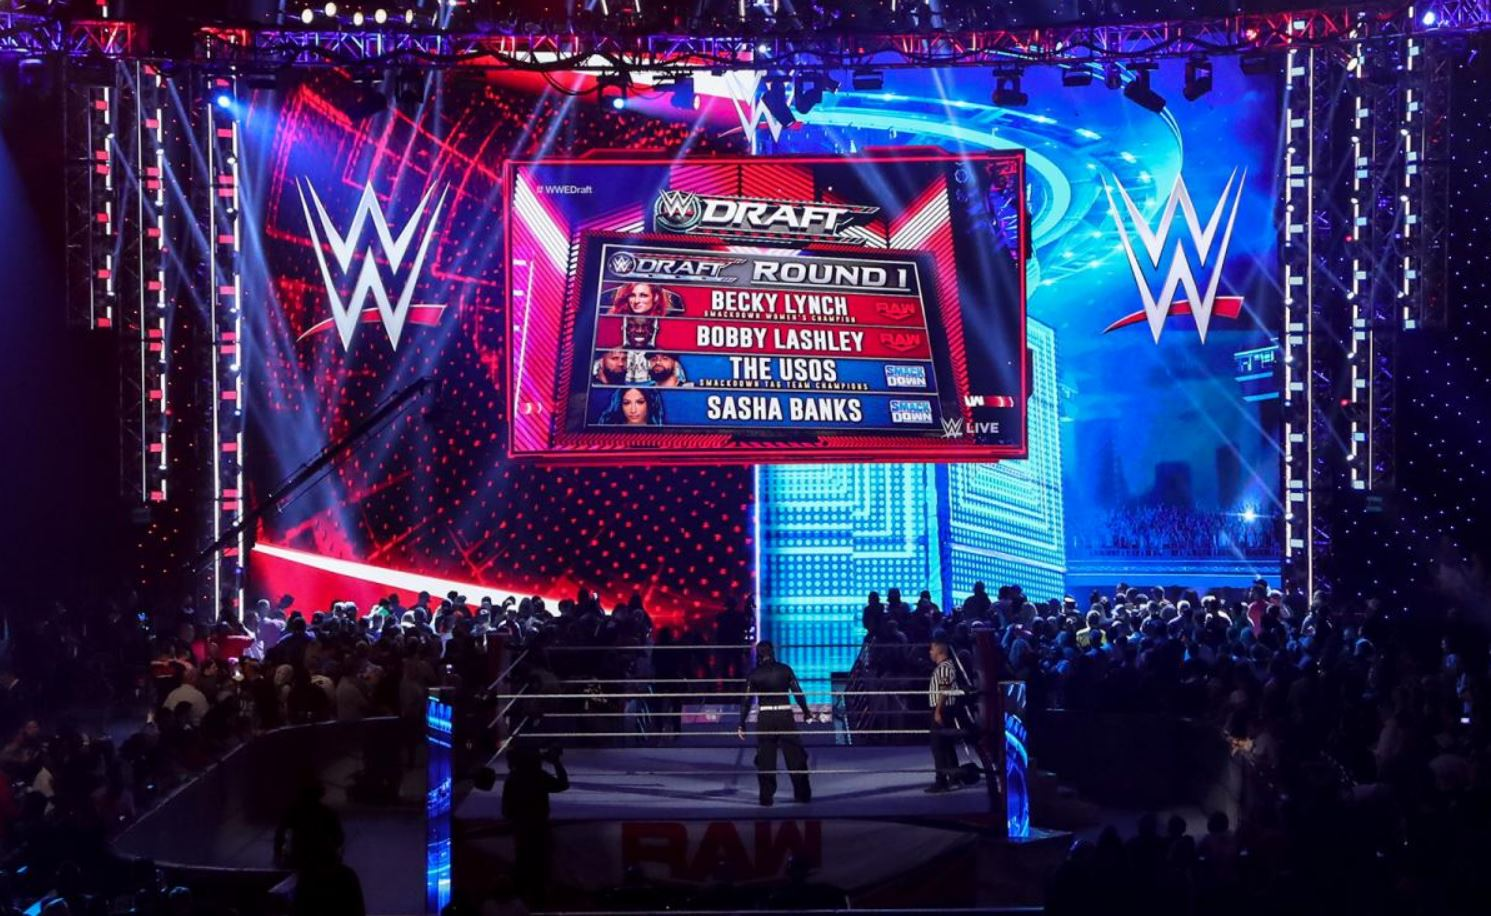 WWE Says The Draft Delivered For RAW